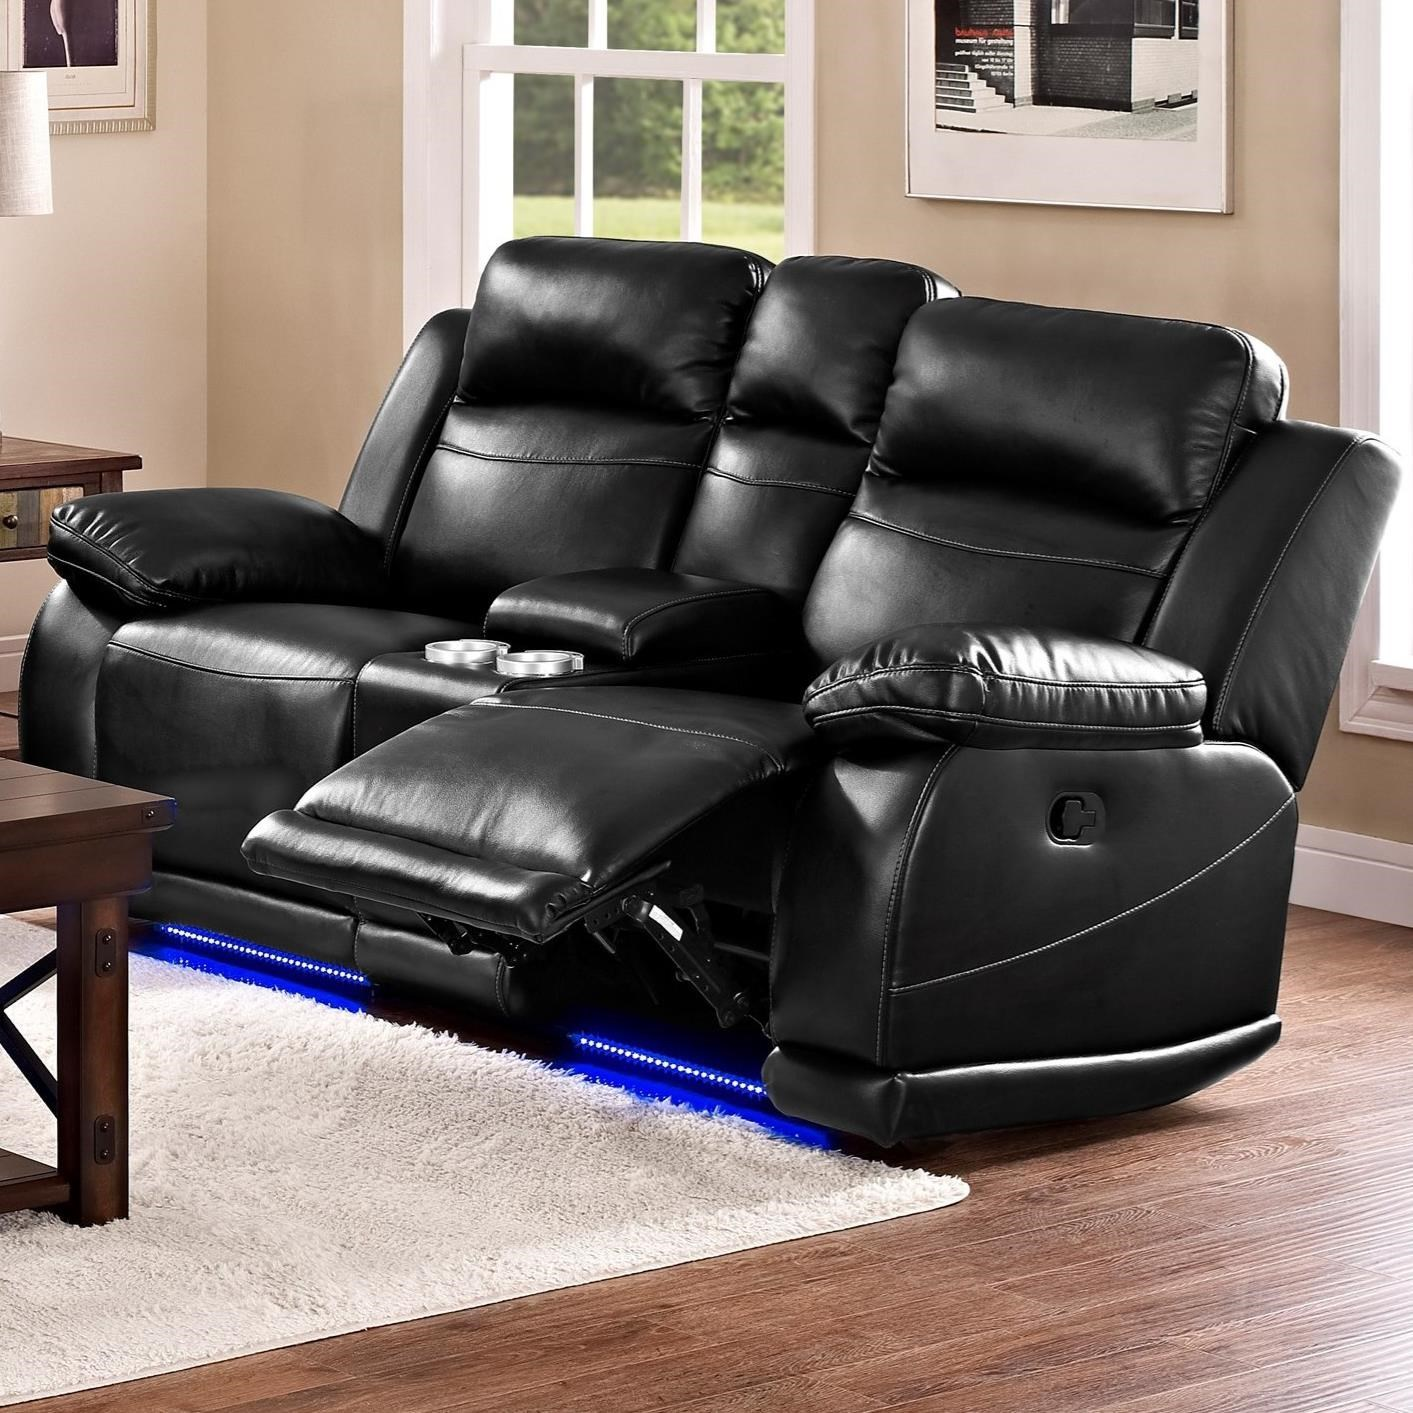 New Classic Jet Casual Power Reclining Loveseat with Console and Cup Holders : power reclining loveseats - islam-shia.org